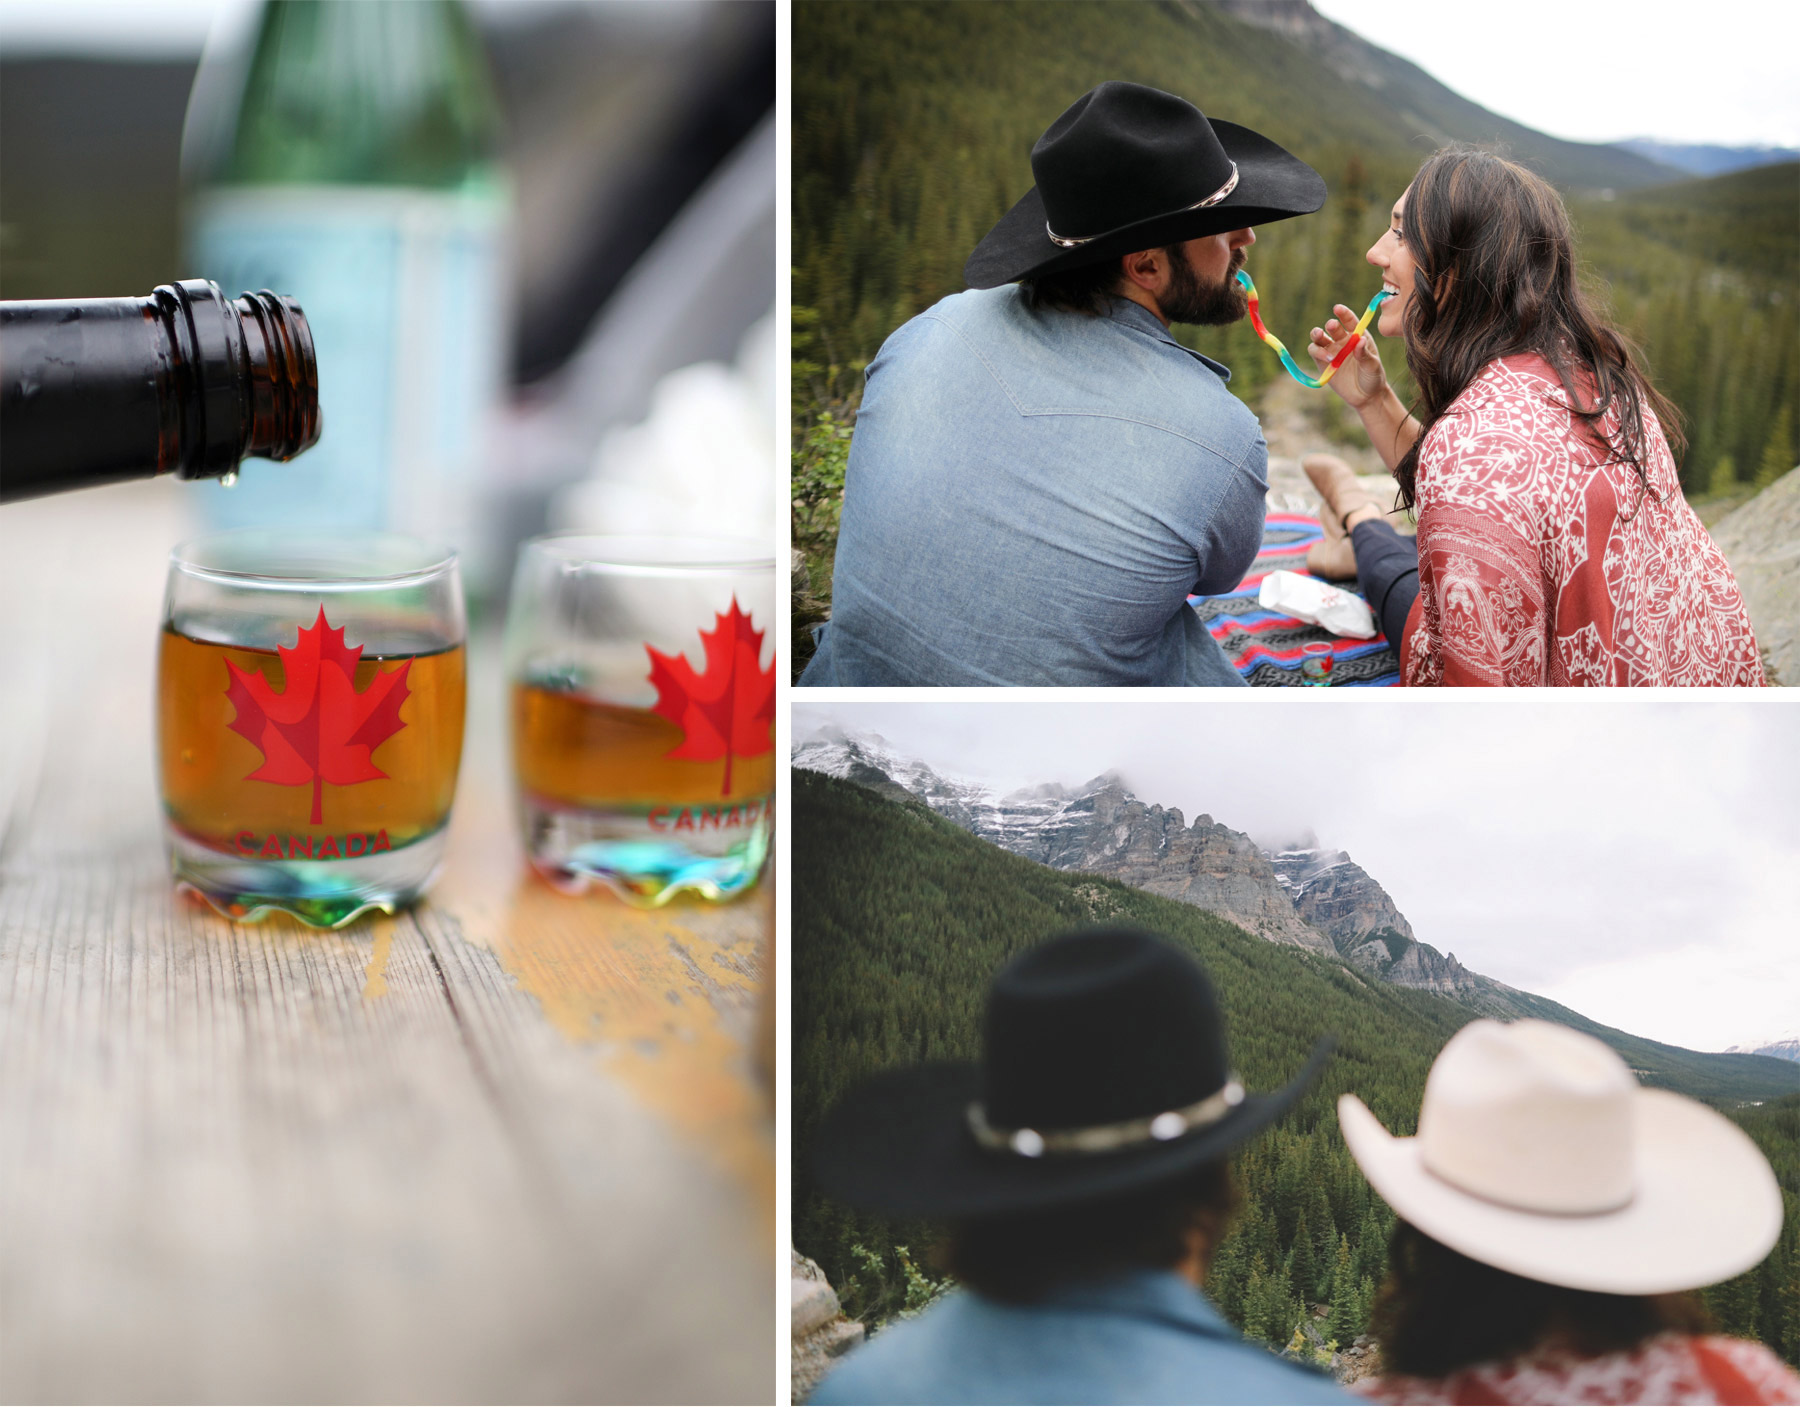 13-Banff-Canada-Engagement-Photography-by-Vick-Photography-Mountains-Cowboy-Hat-Lizz-and-Brady.jpg